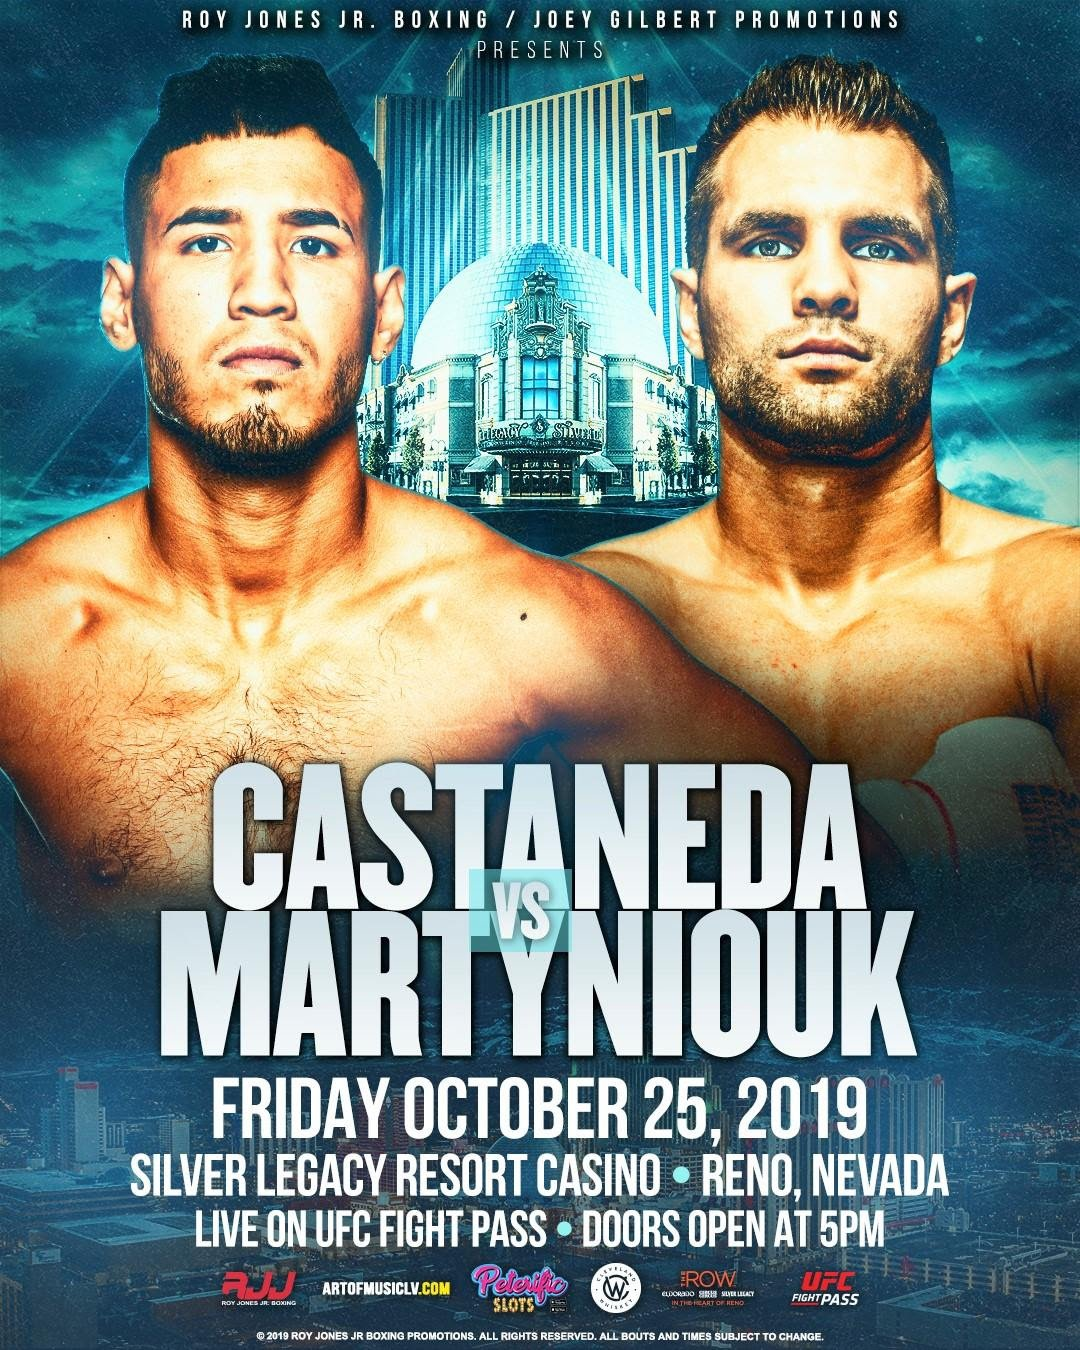 Stan Martyniouk -  Roy Jones Boxing Promotions has announced a loaded full- card for its latest installment of RJJ Boxing on UFC FIGHT PASS®, October 25 in the great fight town of Reno, Nevada.